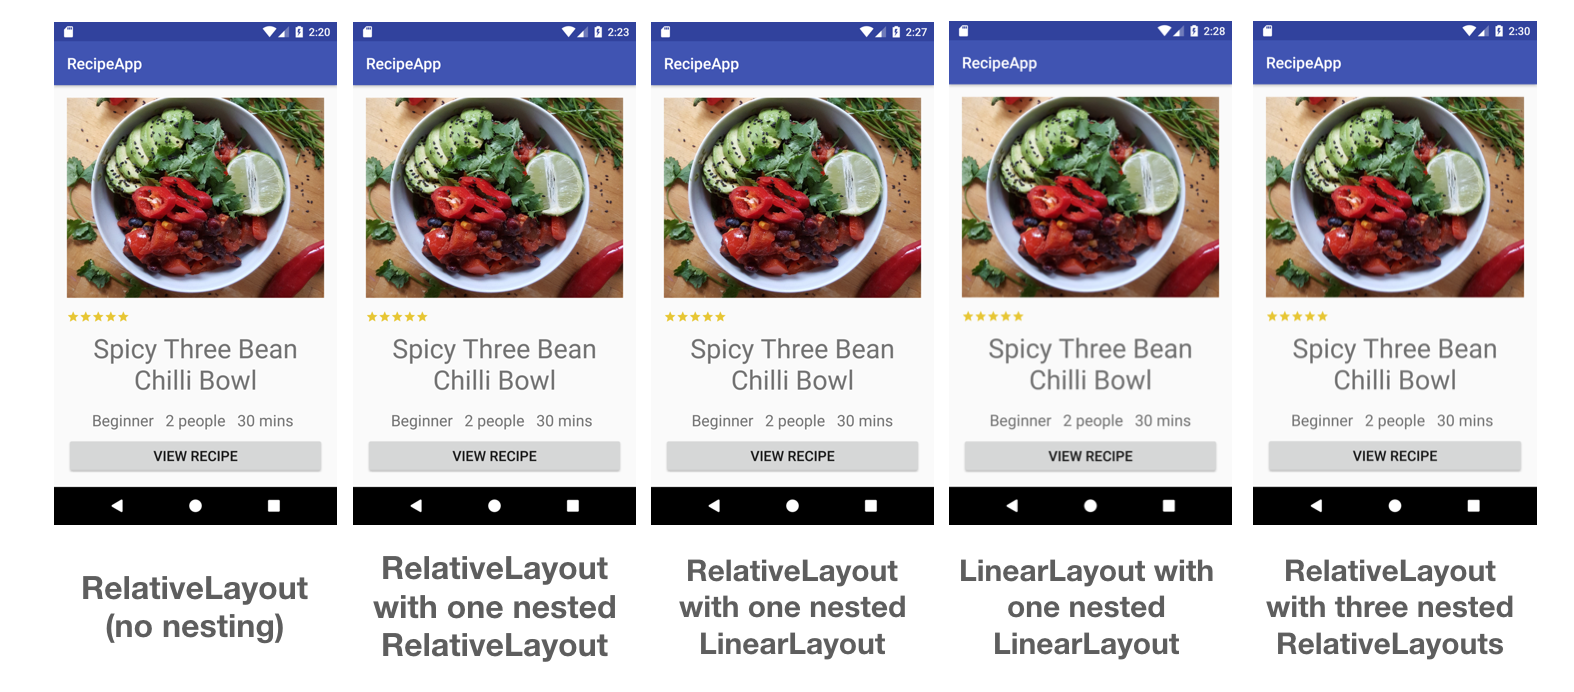 For This Project I Built A Simple Recipe App Using Five Different Layouts As Specified Below Which Will Migrate To ConstraintLayouts